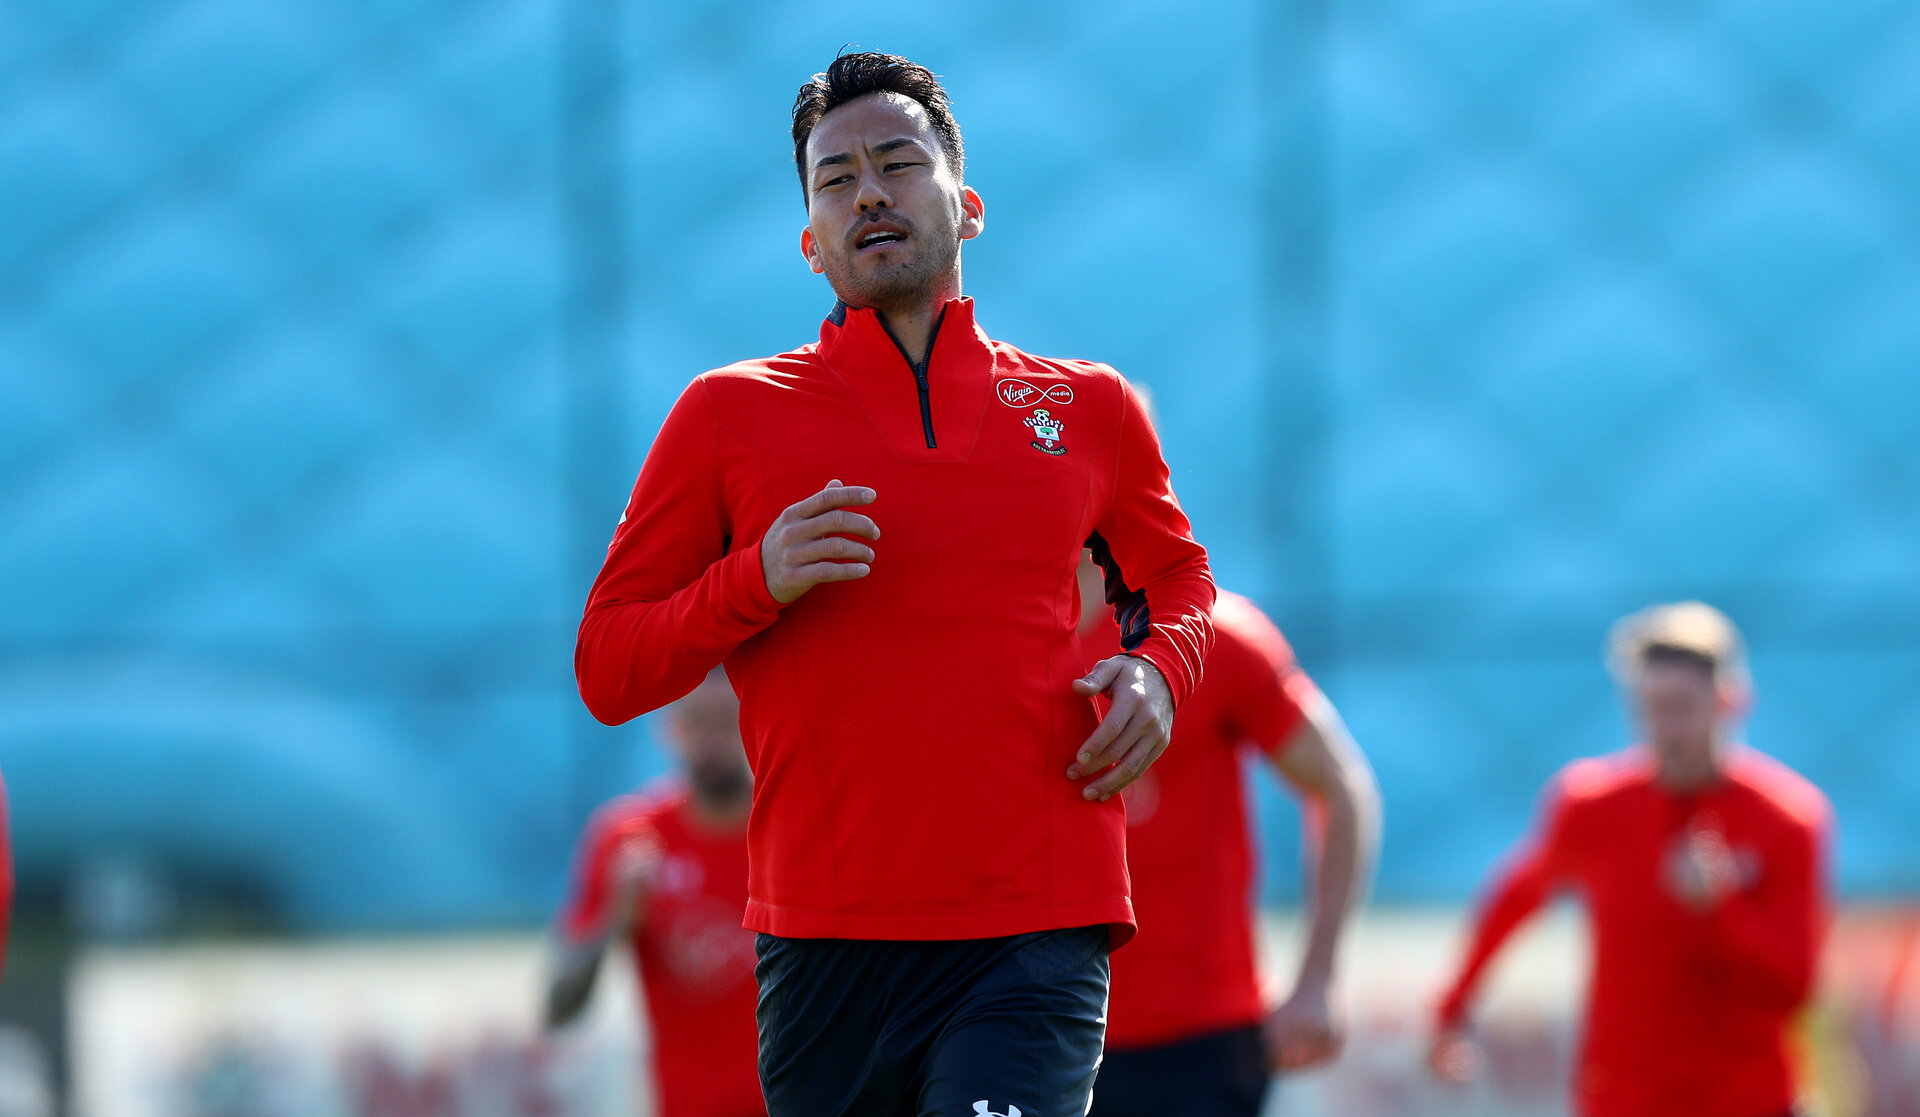 SOUTHAMPTON, ENGLAND - MARCH 27: Maya Yoshida during a Southampton FC training session at the Staplewood Campus on March 27, 2019 in Southampton, England. (Photo by Matt Watson/Southampton FC via Getty Images)